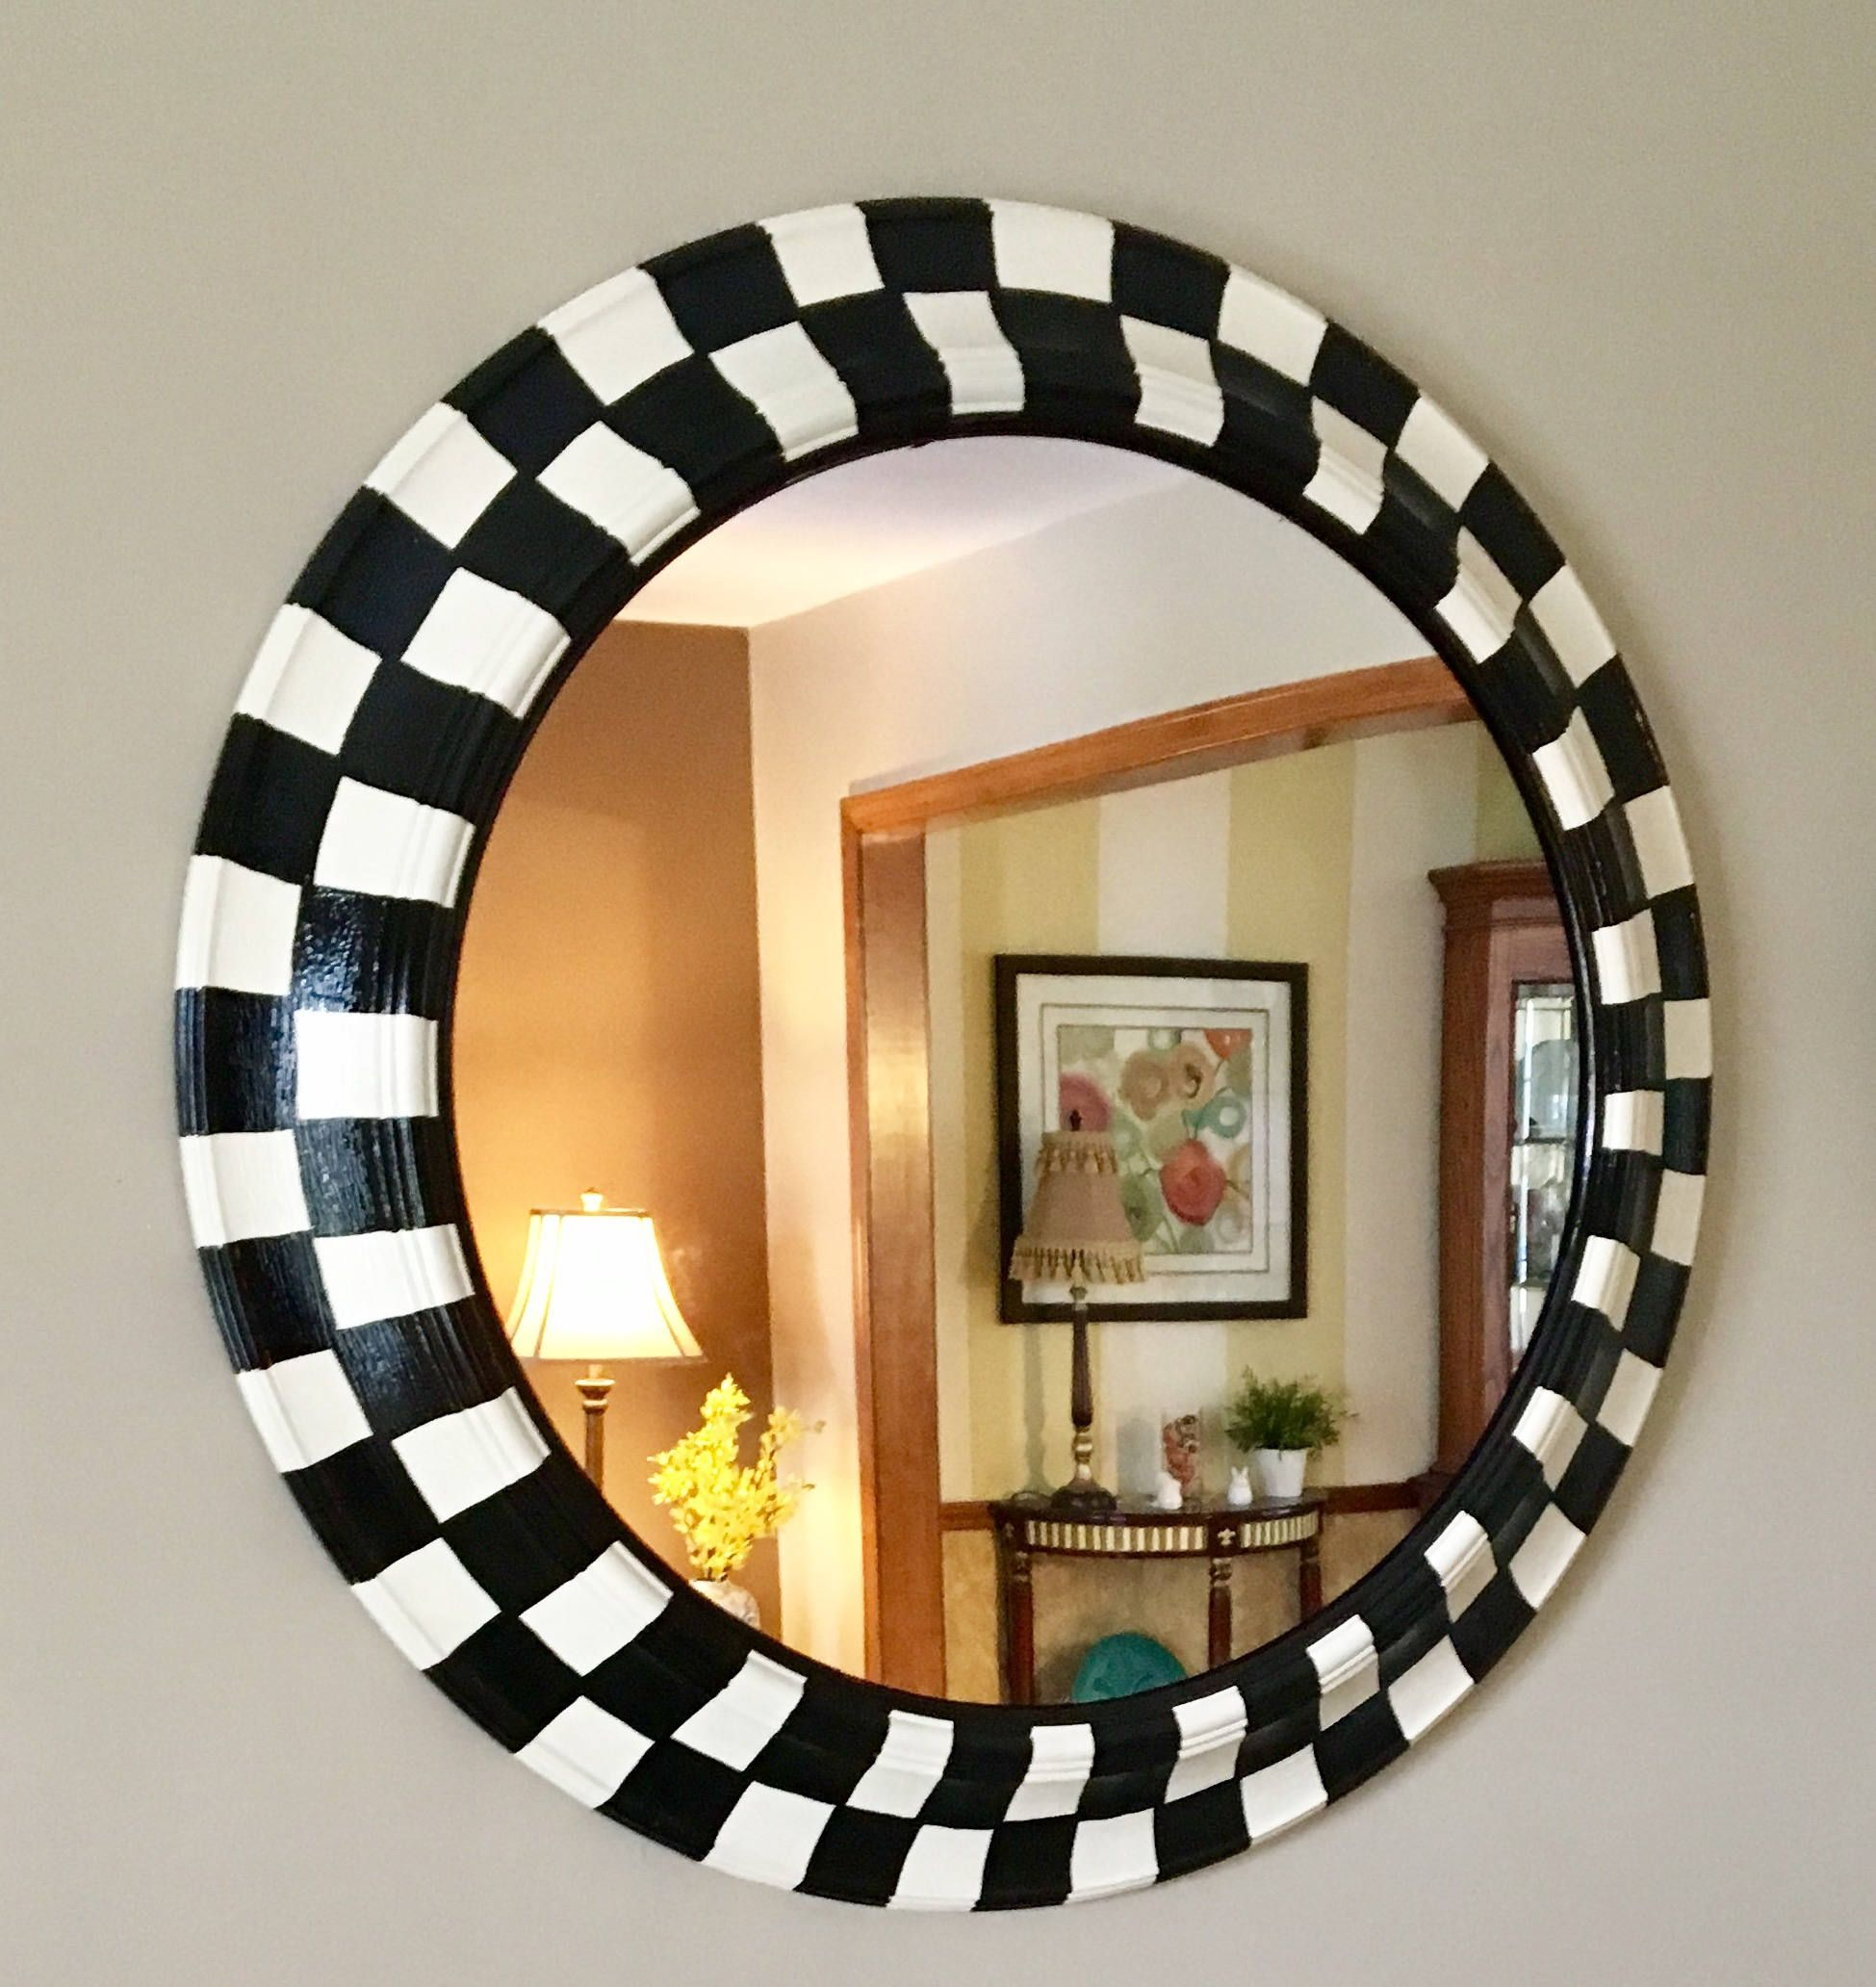 Whimsical Painted Mirror Round Black And White Checked Mirror Wall Mirror Hand Painted Home Decor Whimsical Painted Furniture Painting Lamps Decor